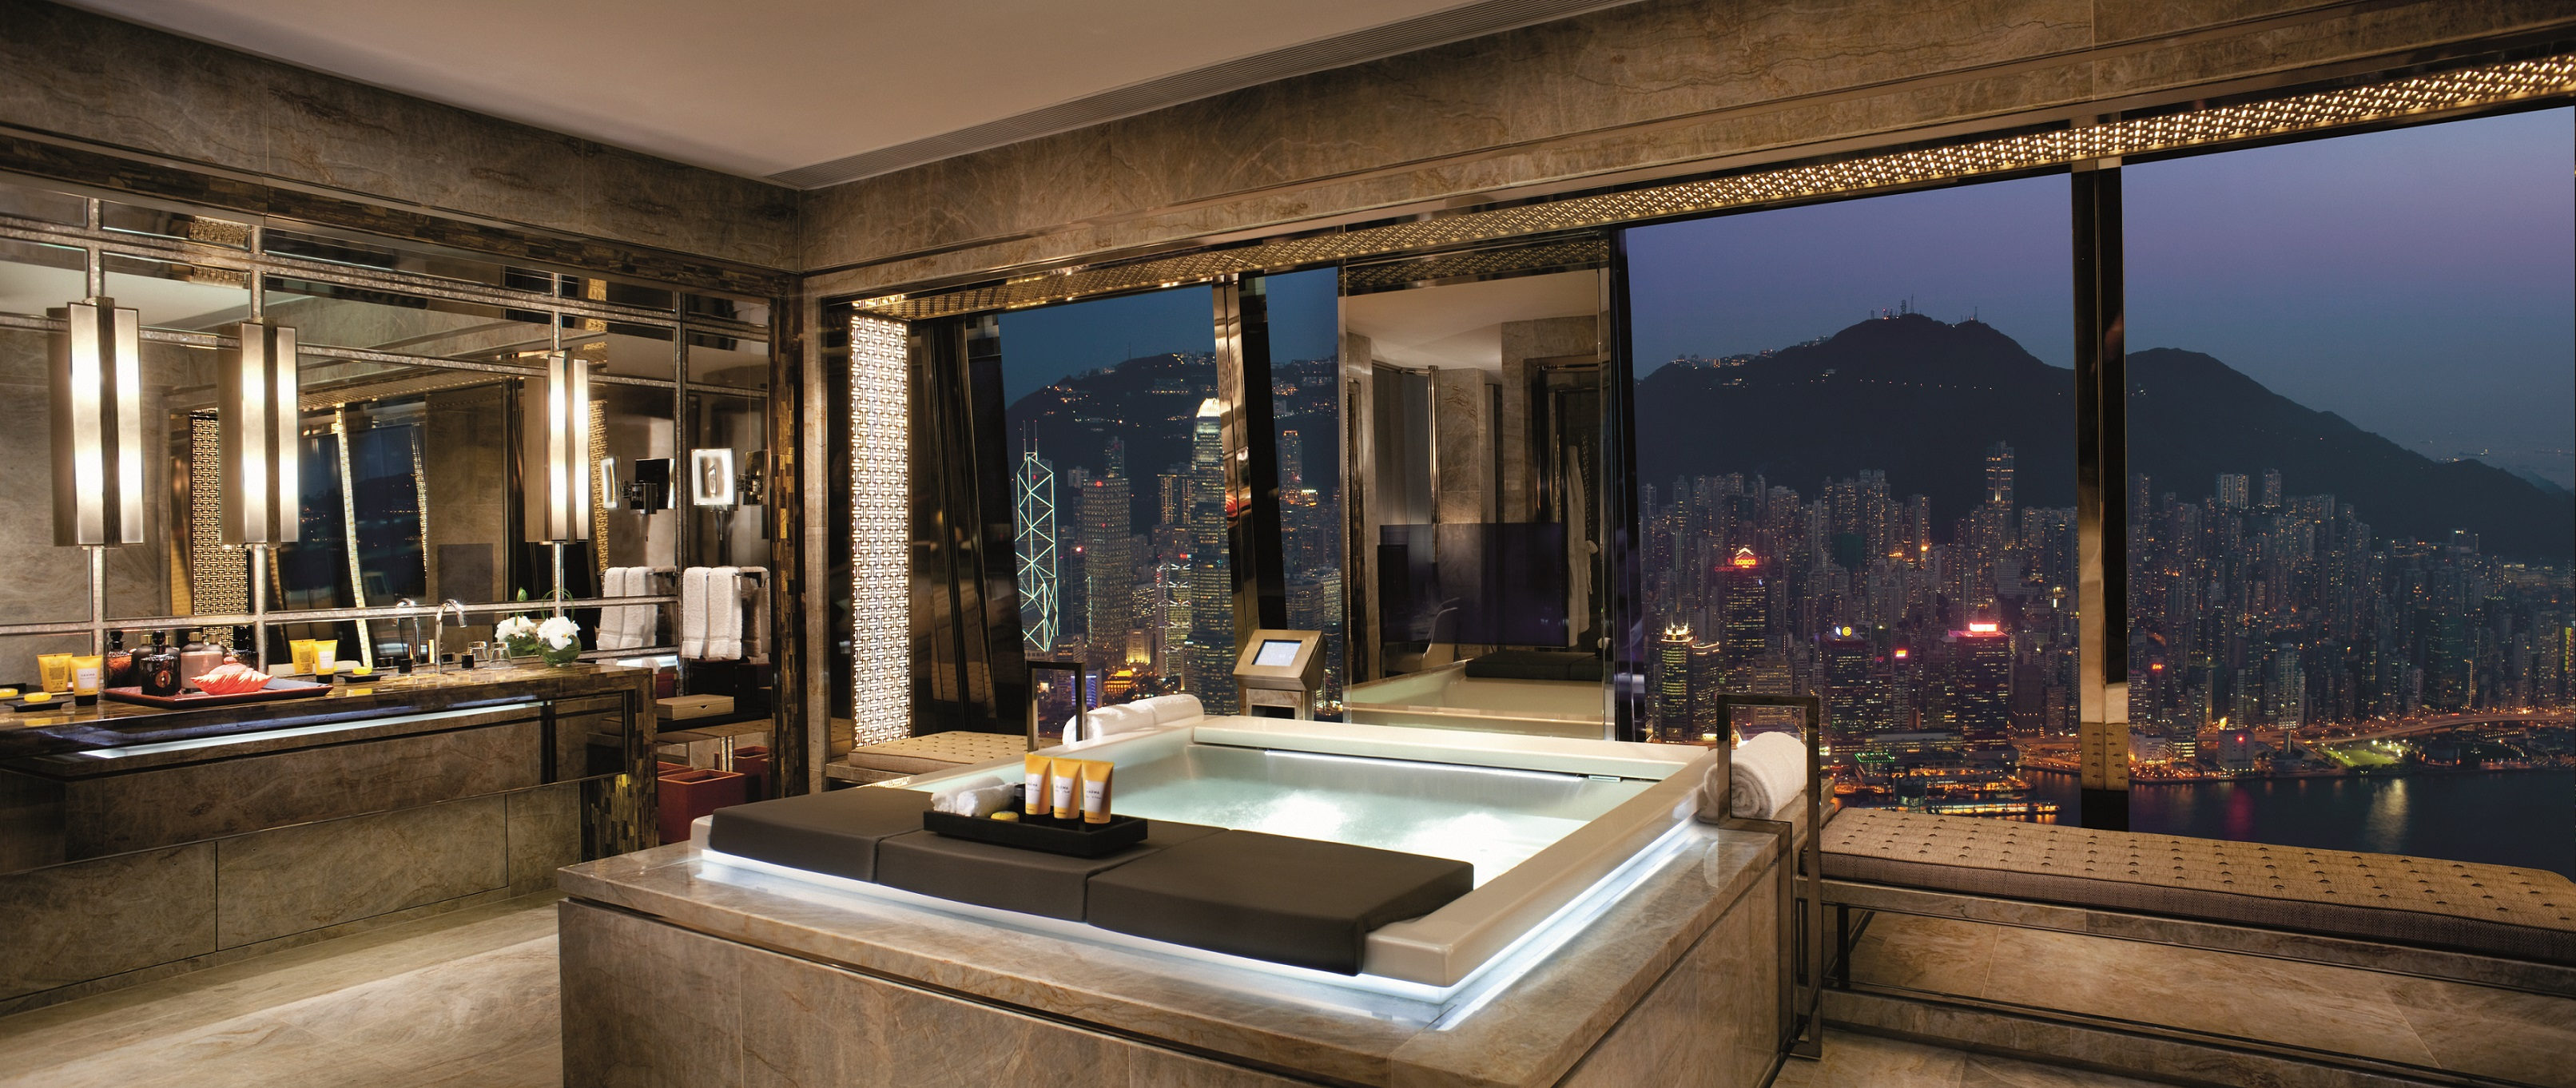 Discover the world 39 s best luxury bathrooms for Designer bath